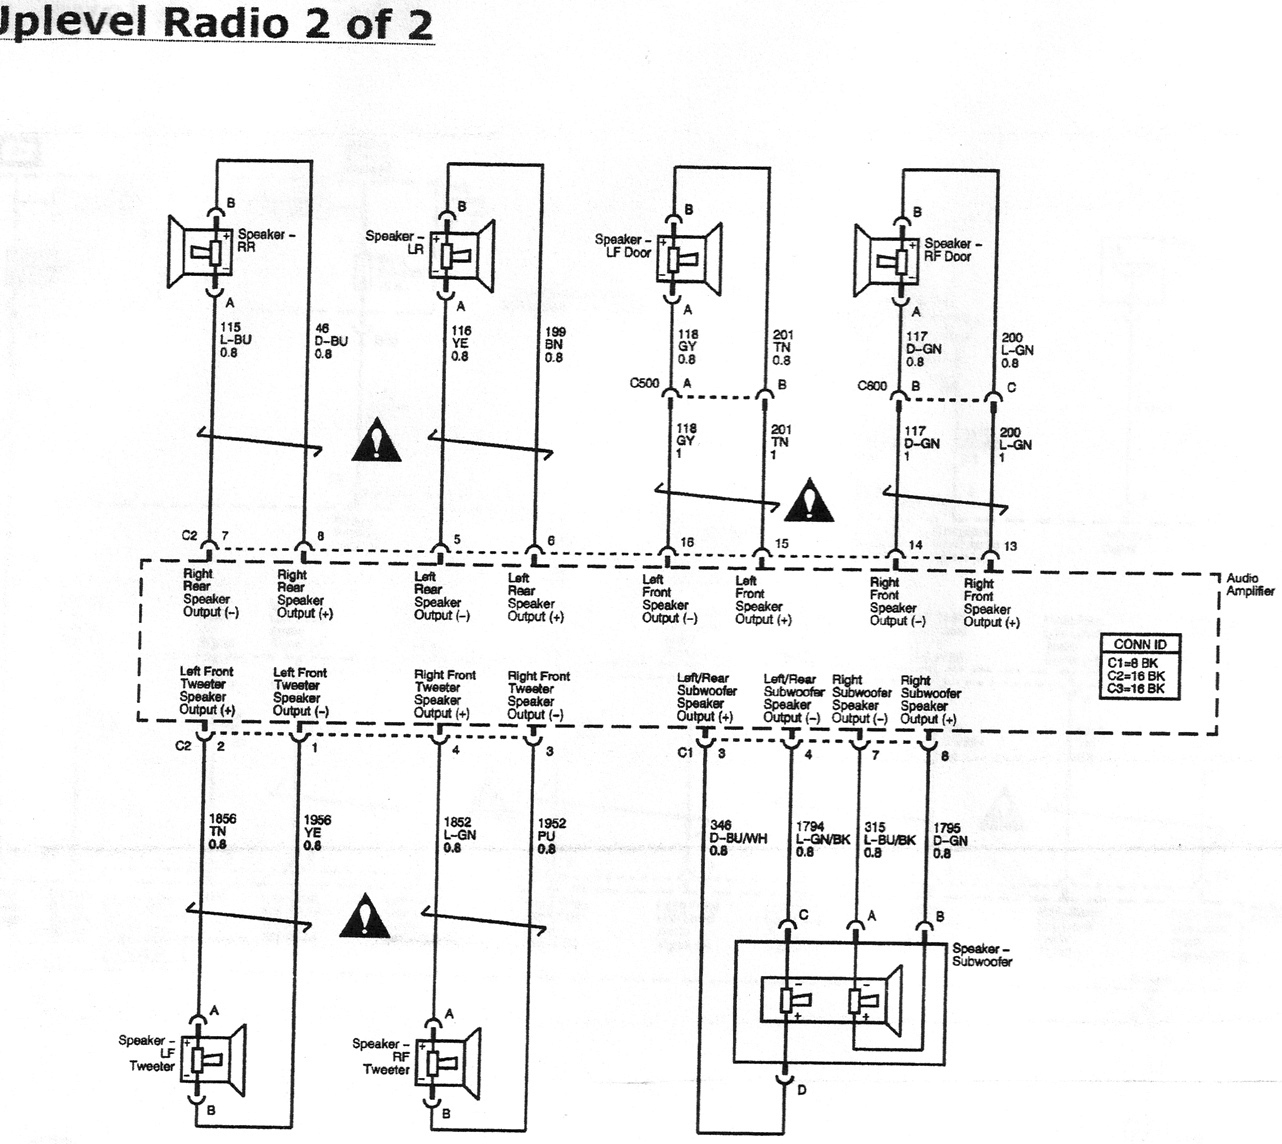 2001 Vw Pat Radio Wiring Diagram